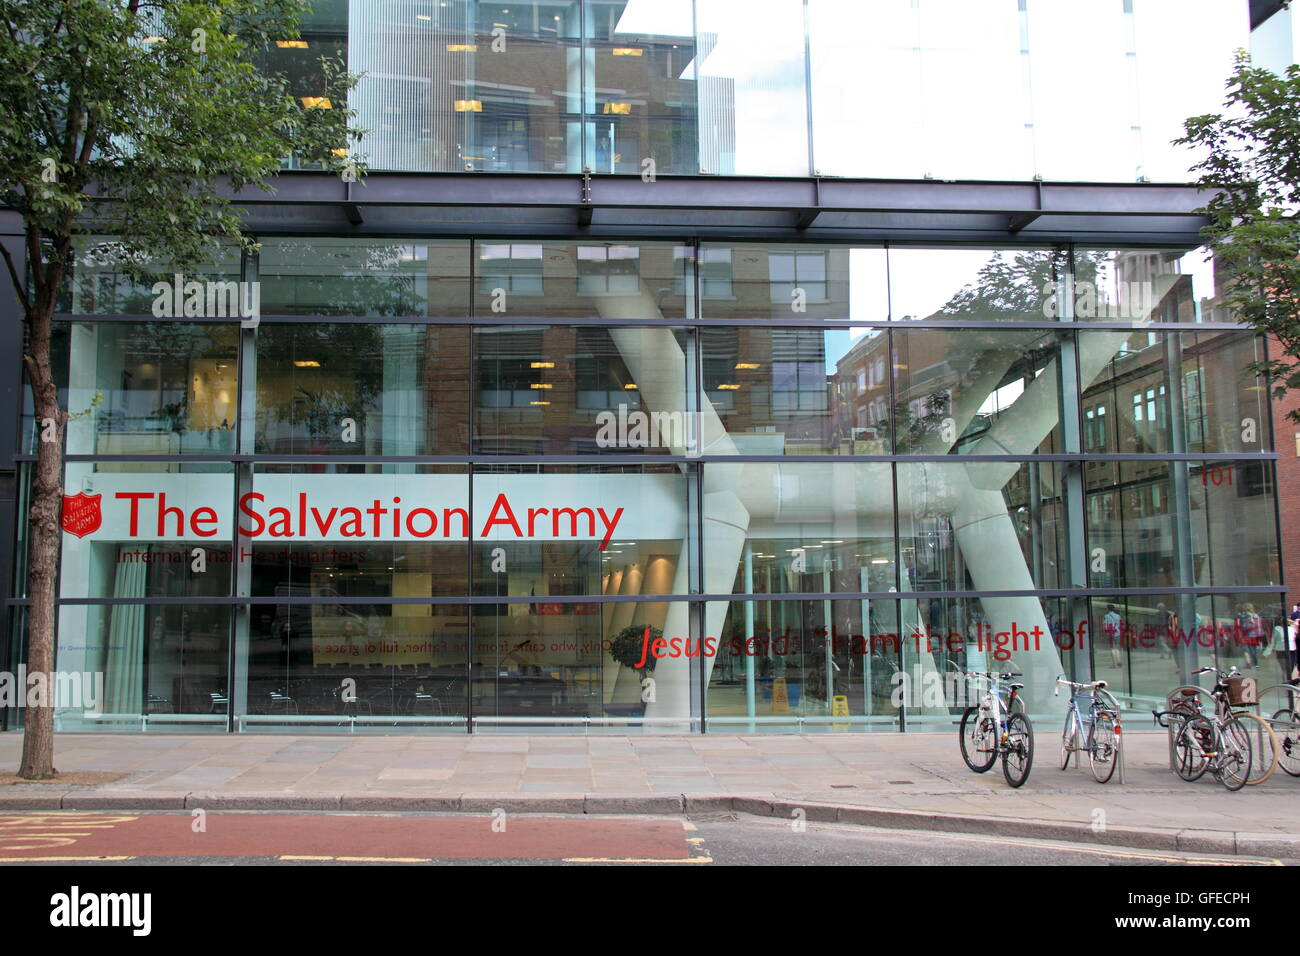 Salvation army phone number and address